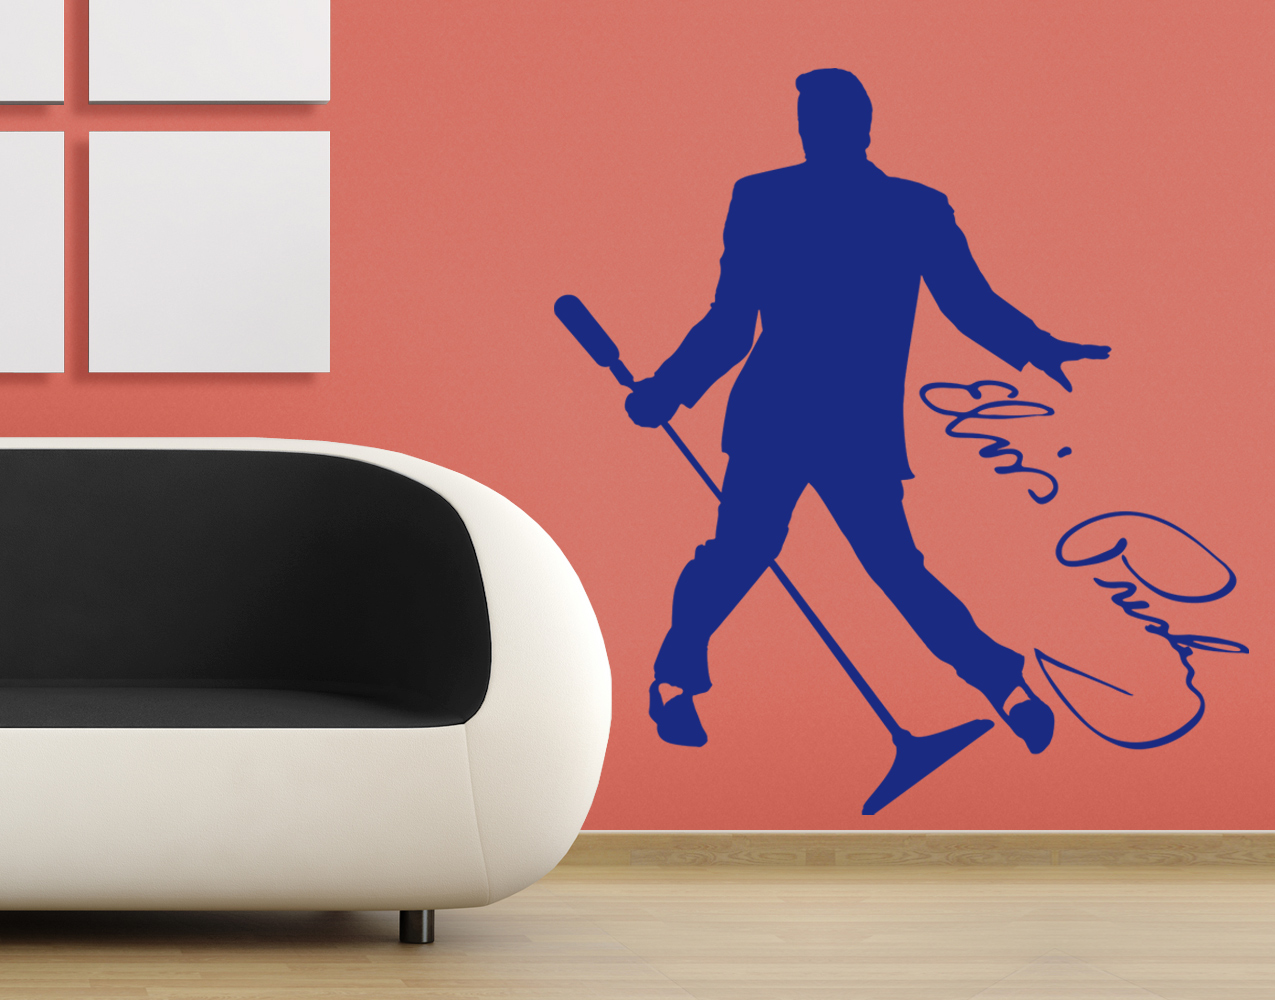 the gallery for elvis presley silhouette vector. Black Bedroom Furniture Sets. Home Design Ideas